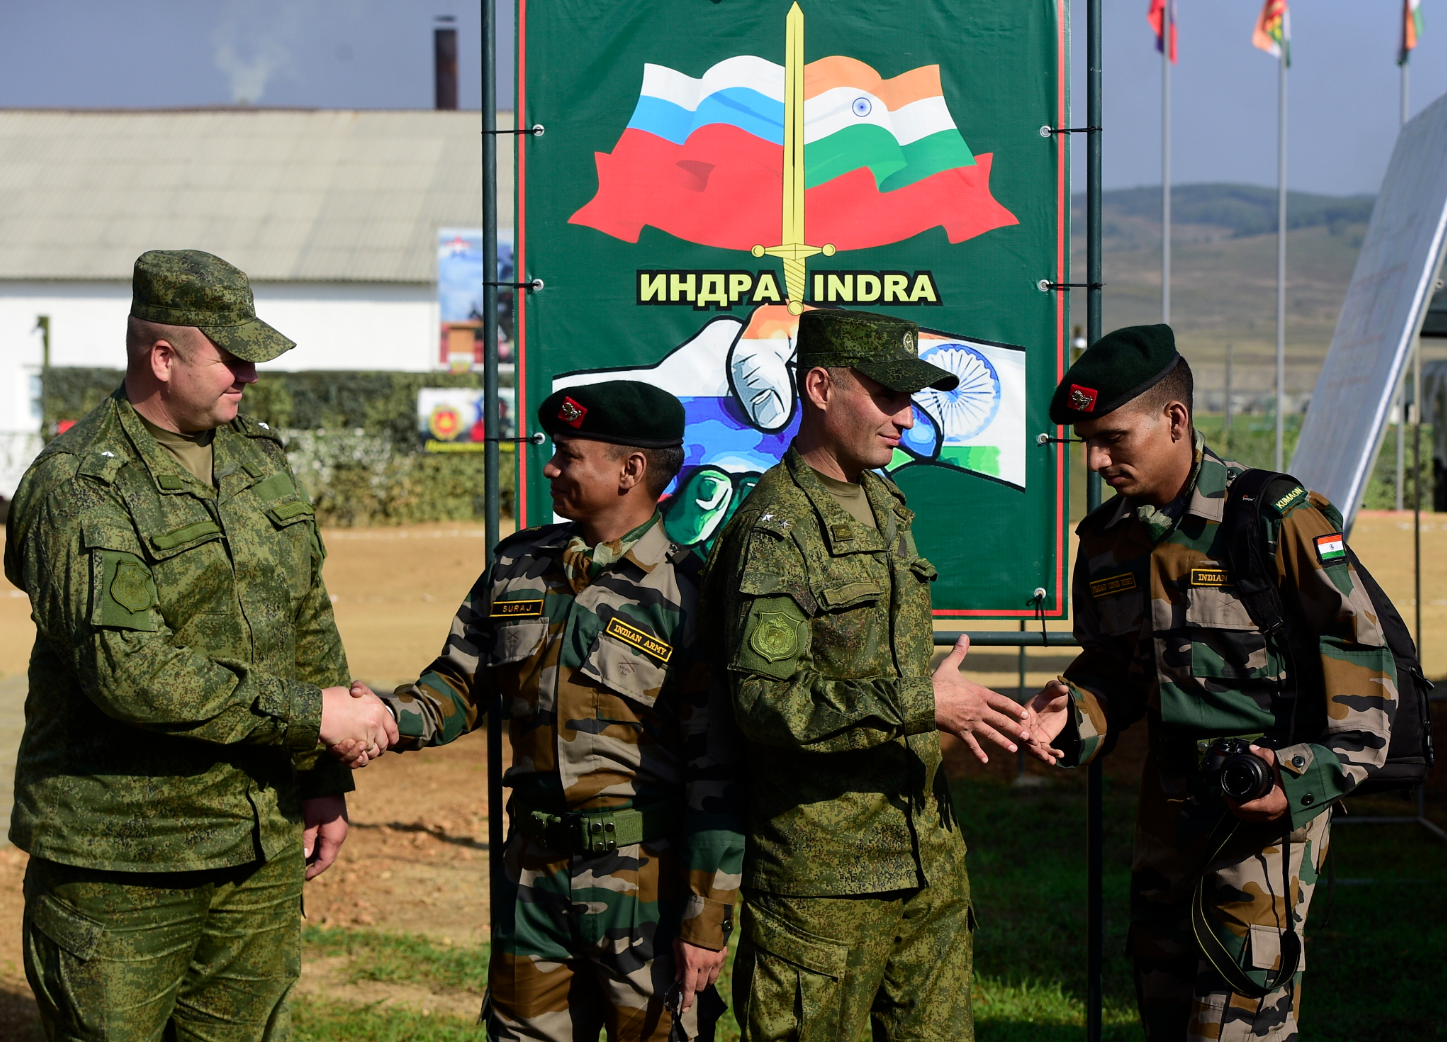 If Russia throws its military helmet into the ring, India would welcome such direct support.